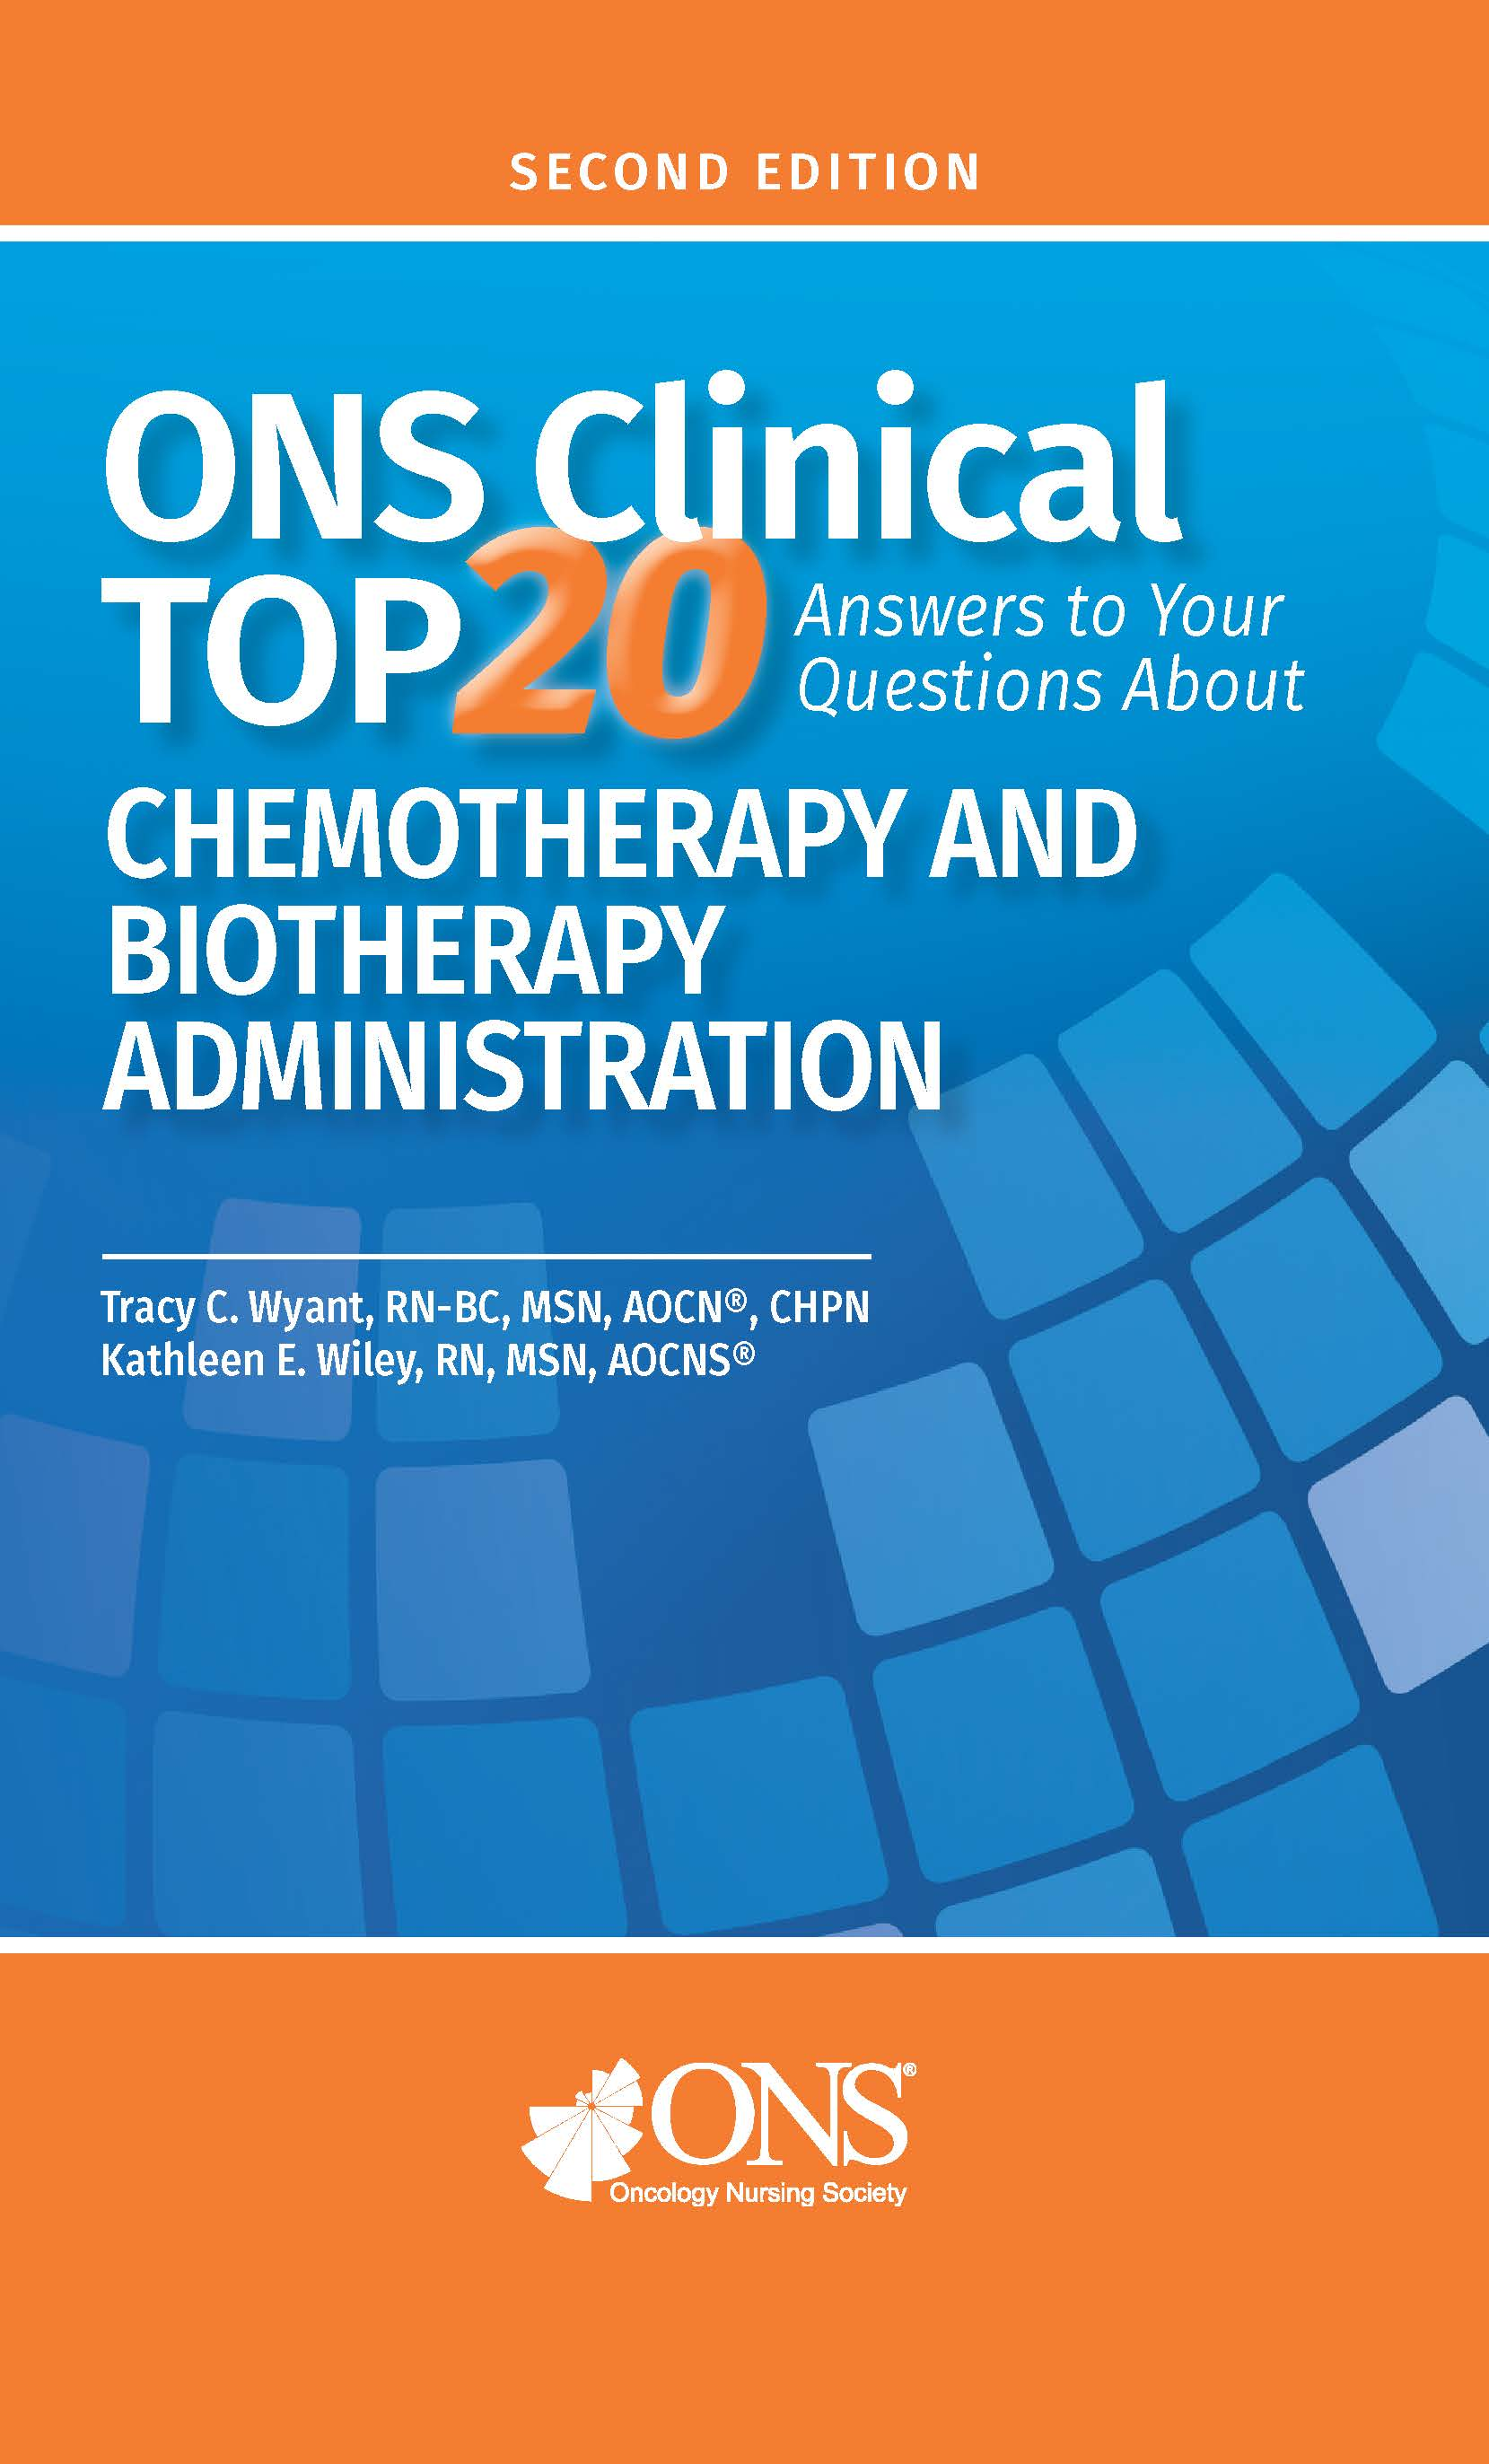 ONS Clinical Top 20: Answers to Your Questions About Chemotherapy